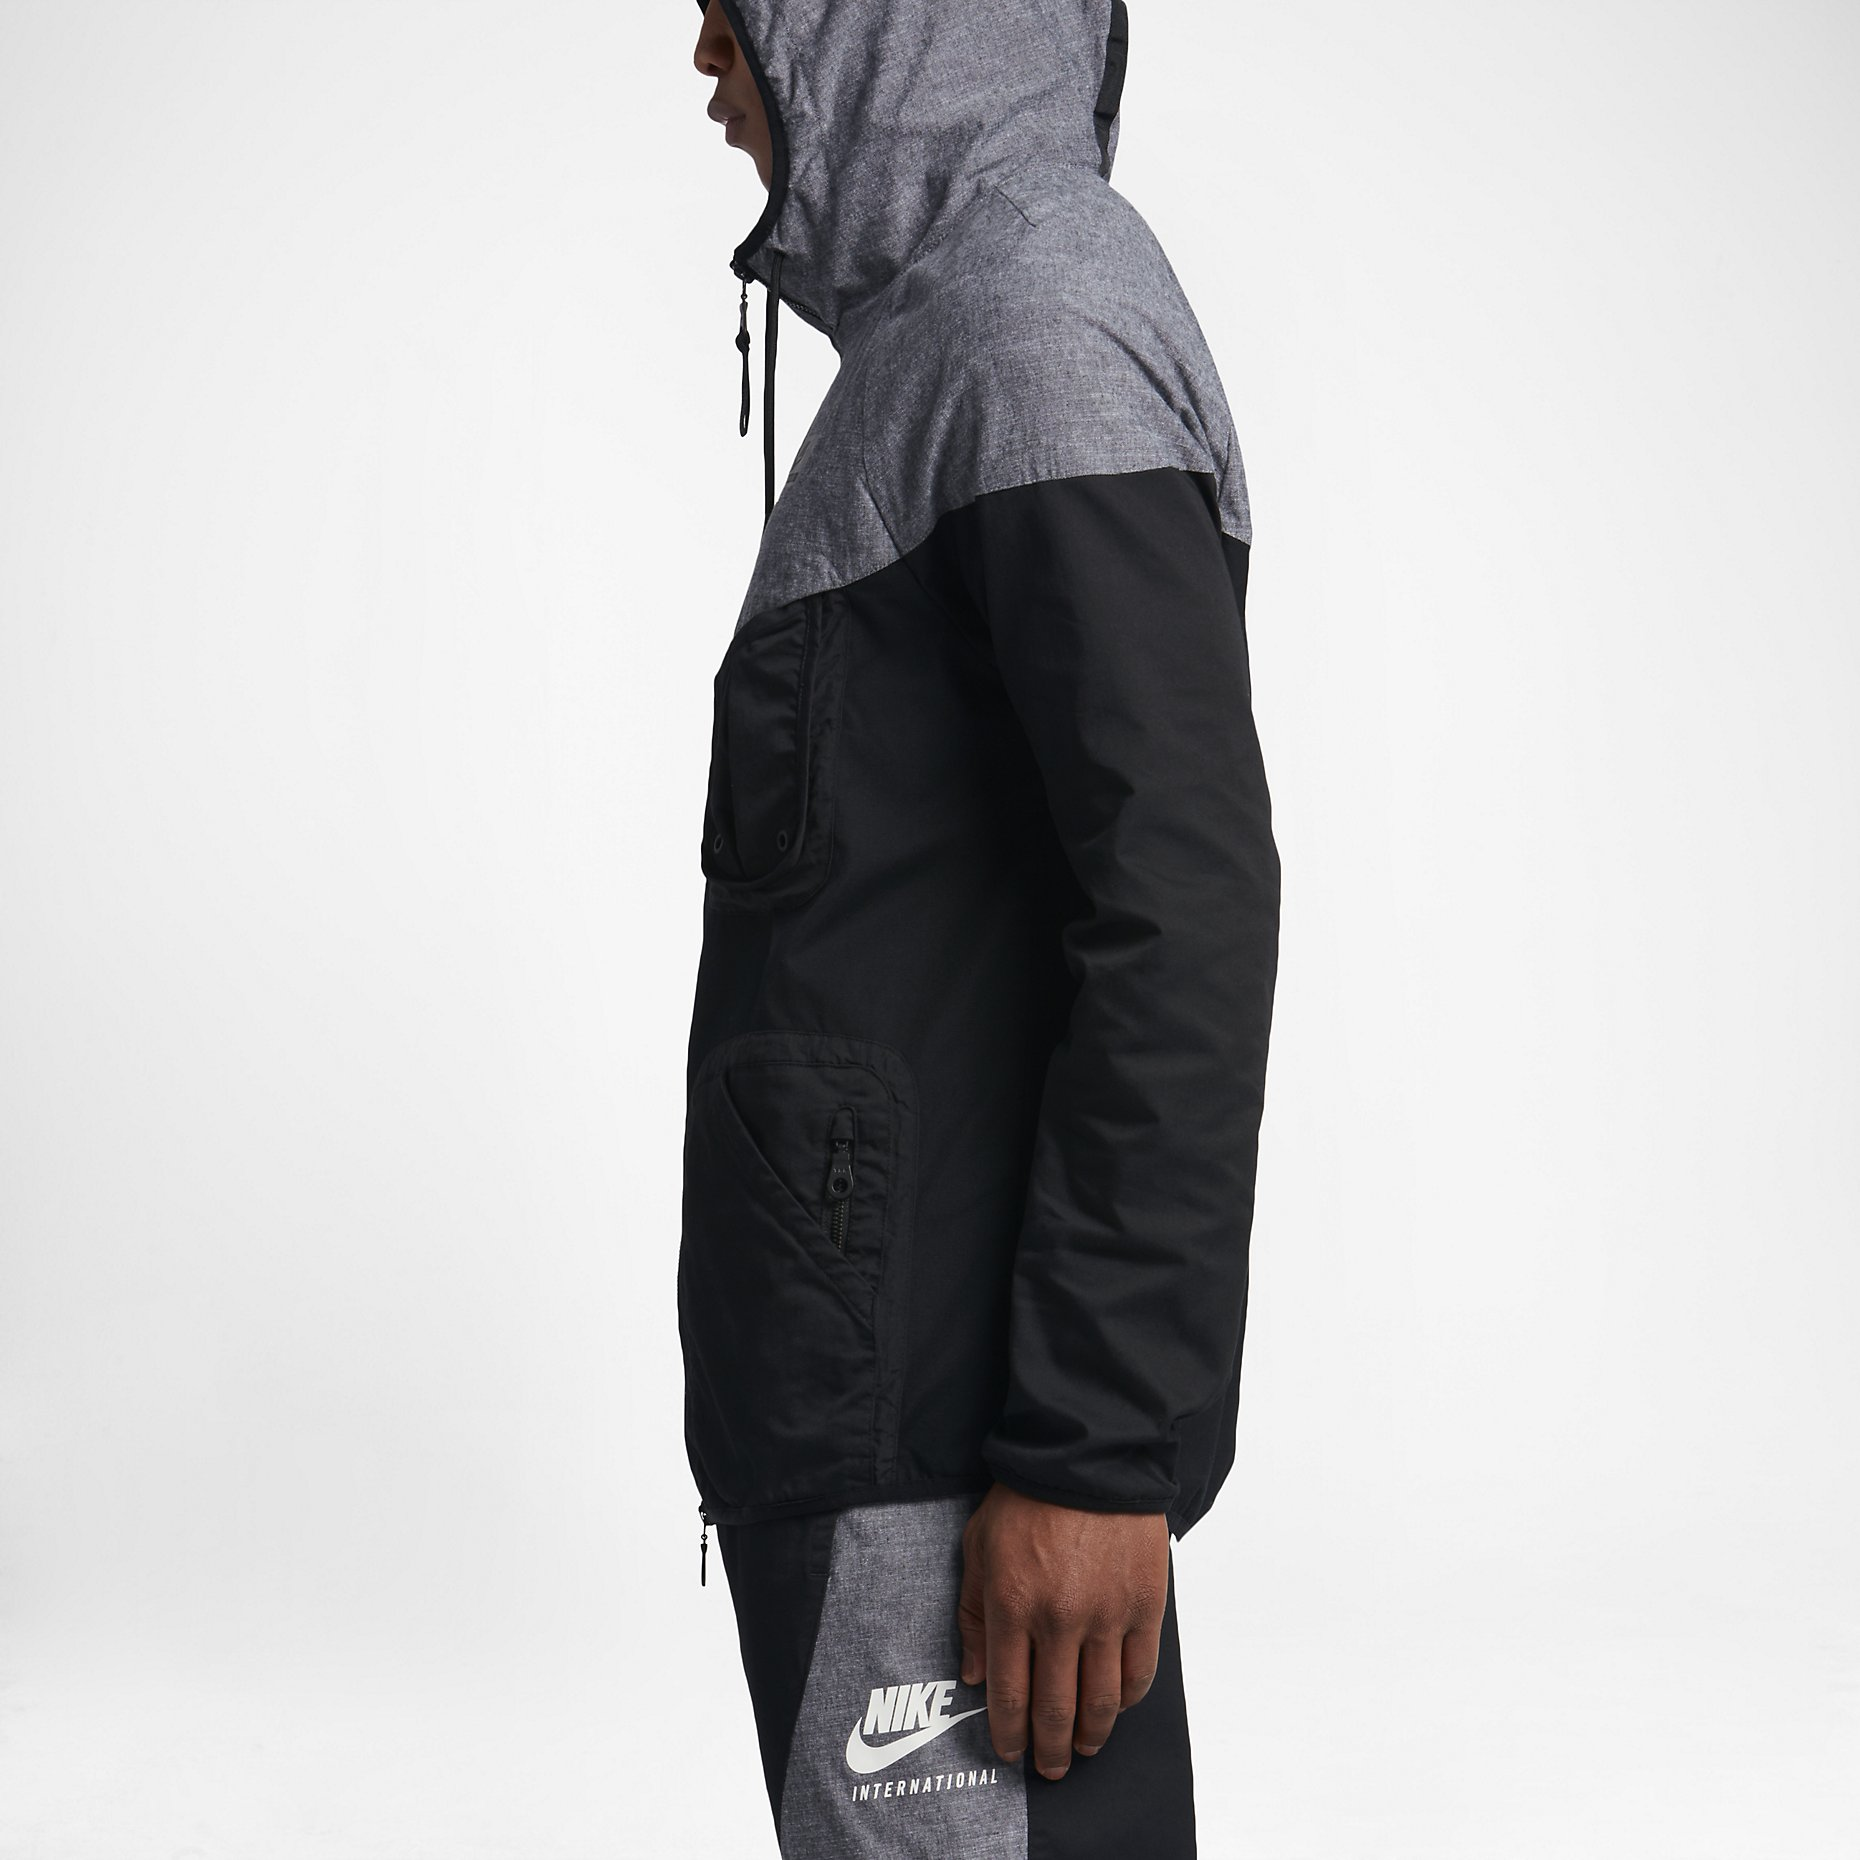 Nike International Windrunner Mens Jacket